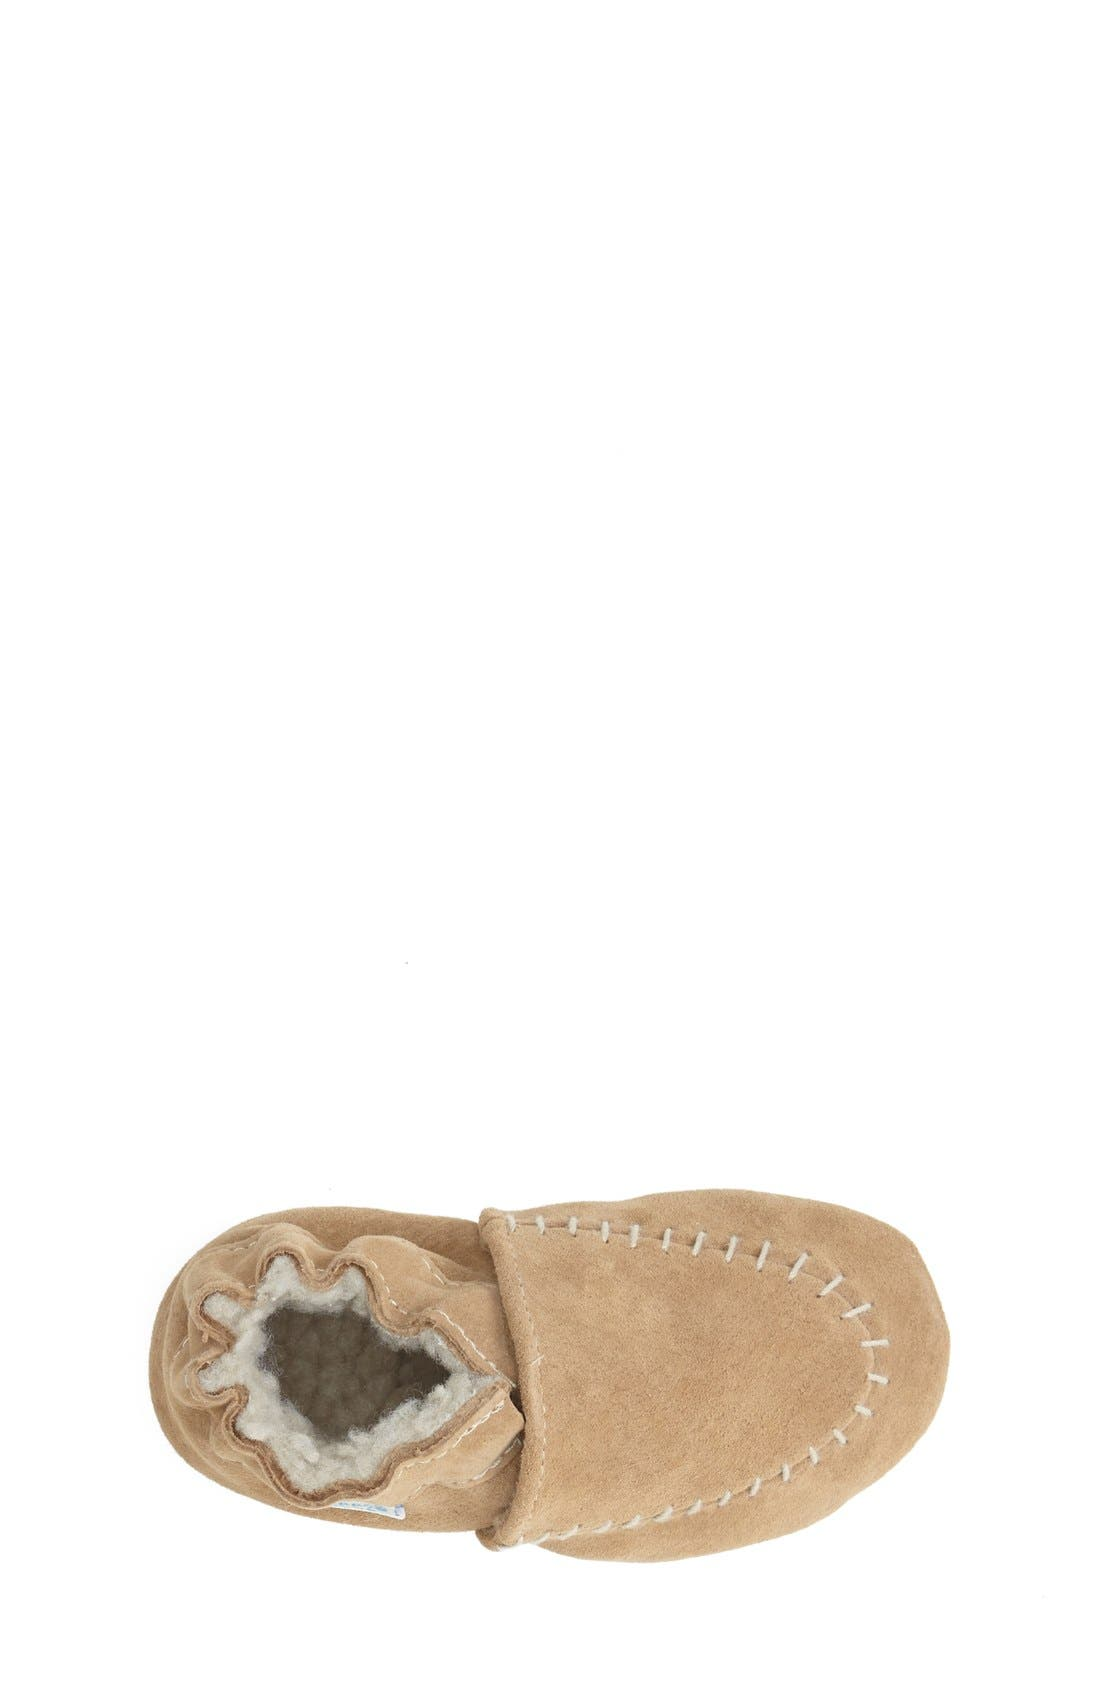 Cozy Moccasin Crib Shoe,                             Alternate thumbnail 3, color,                             Taupe